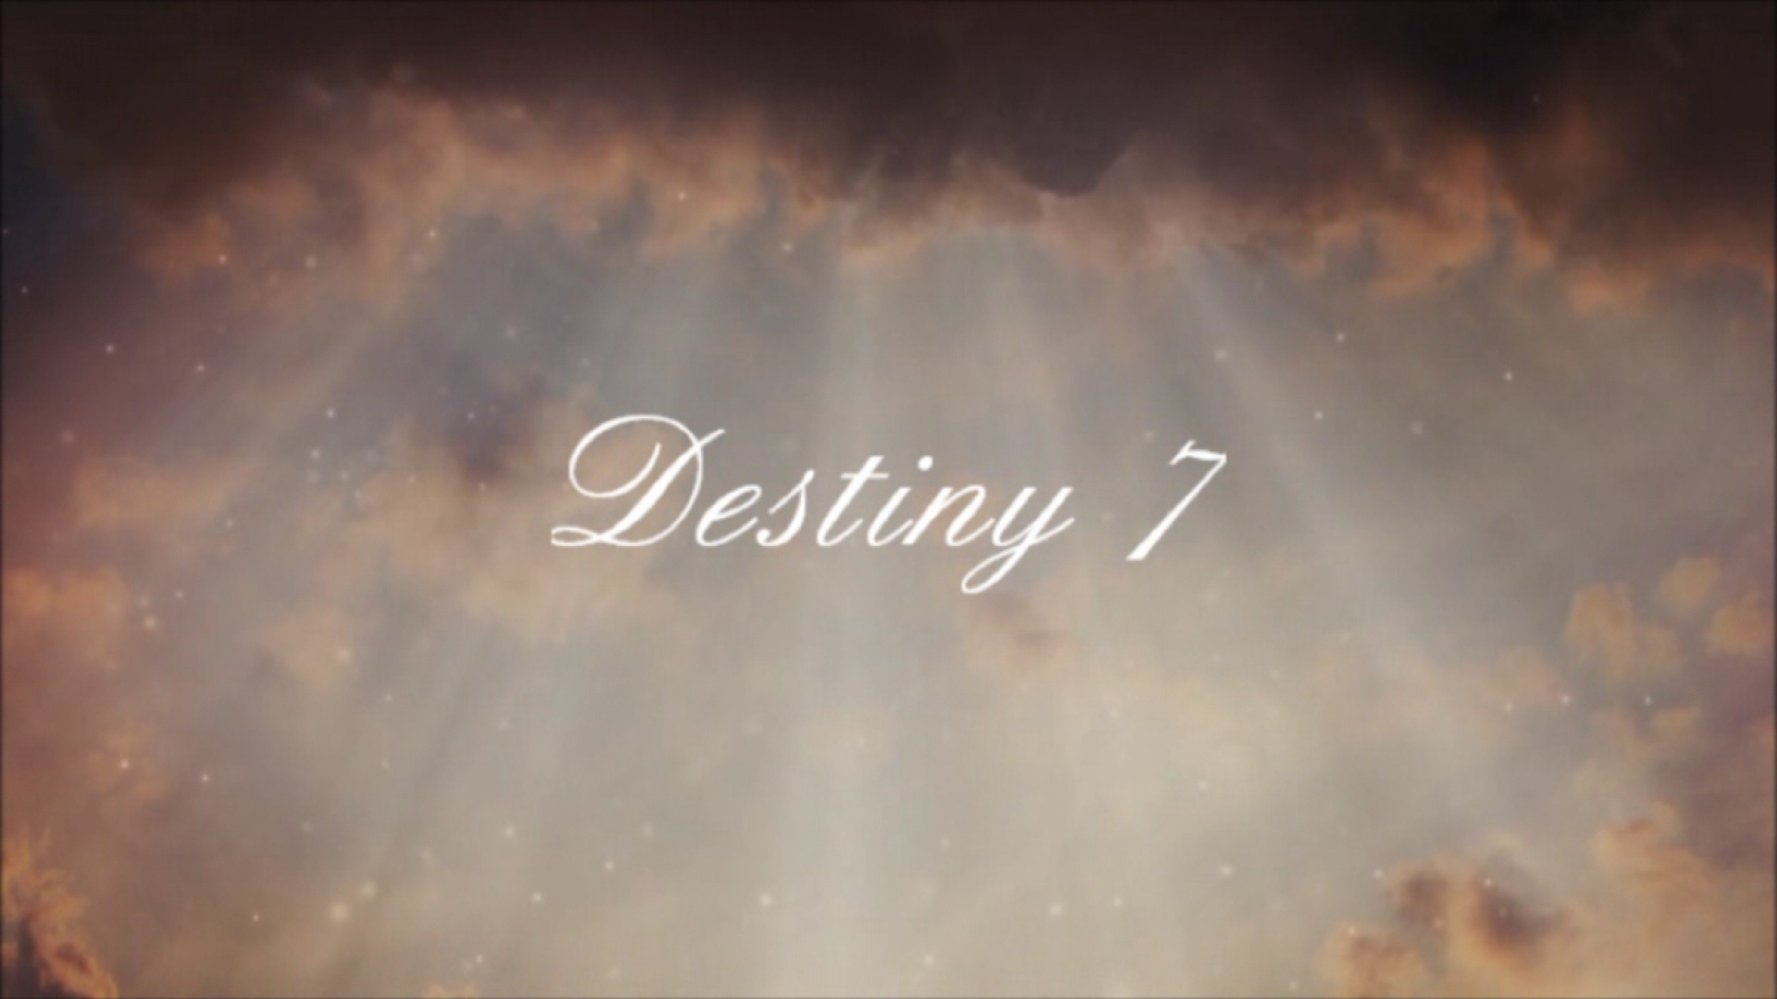 444 Destiny 7 - Miracles happen 1